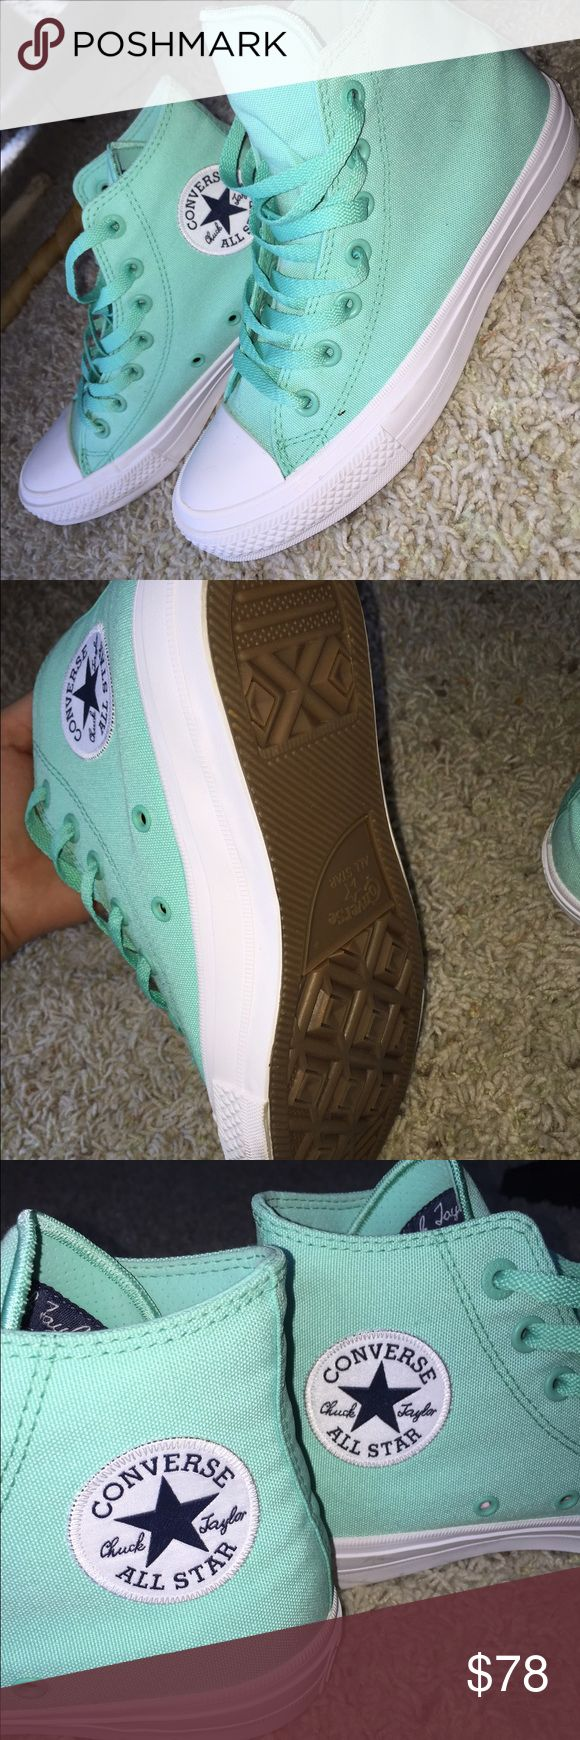 Converse Chuck Taylor All Star ll High Top How cute are these mint colored high top converse?! These are brand new-NEVER WORN! Size 7.5 (I absolutely love these shoes but they are too big for me) PRICE is FIRM! I would like what I paid for them! :) Converse Shoes Sneakers